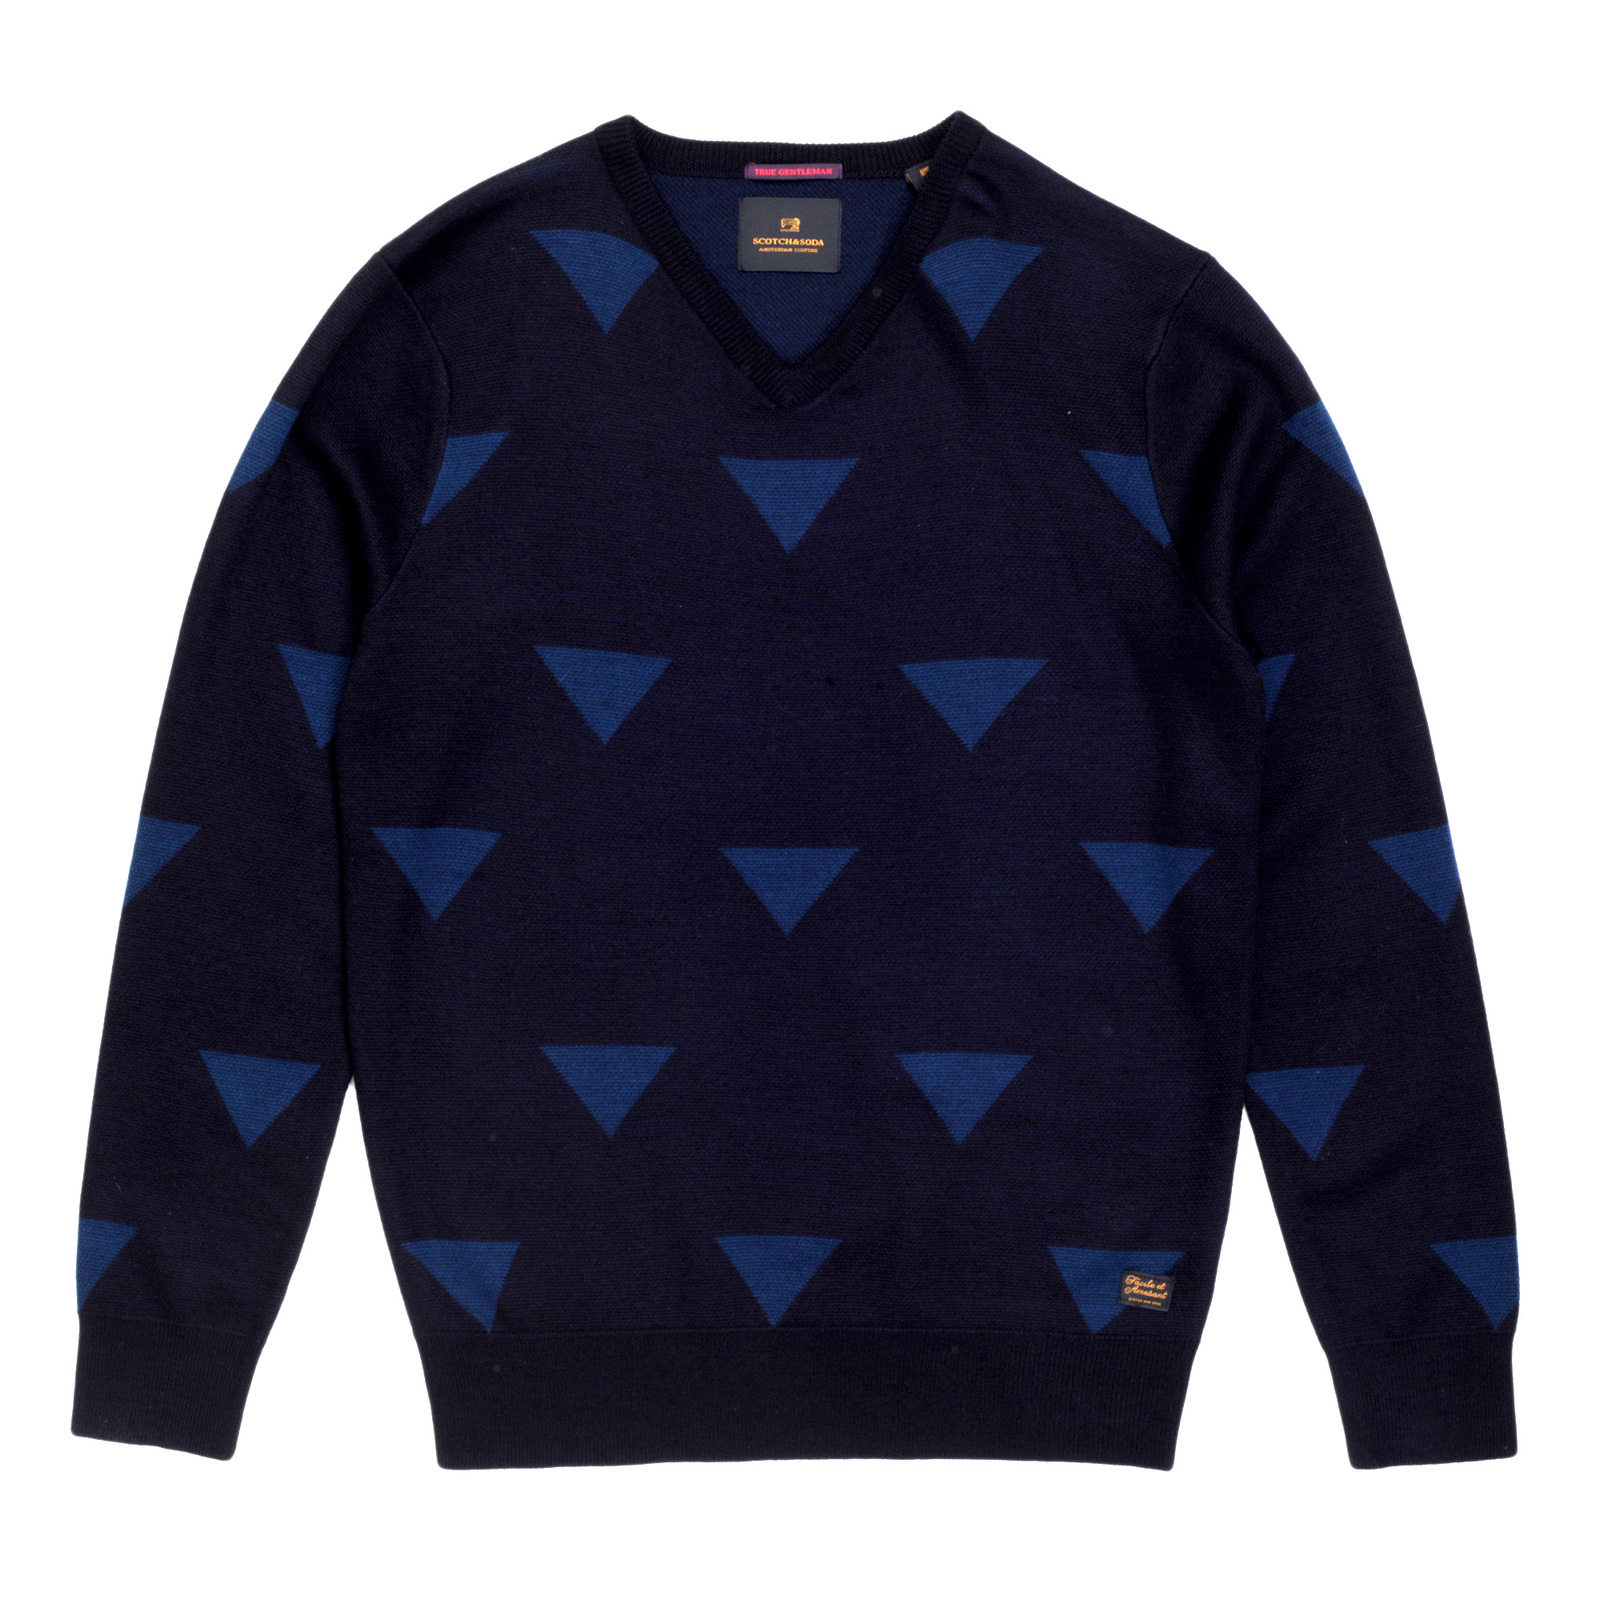 a5dd3169e14ddb Check out this Knitted Navy Jumper at Togged Today!